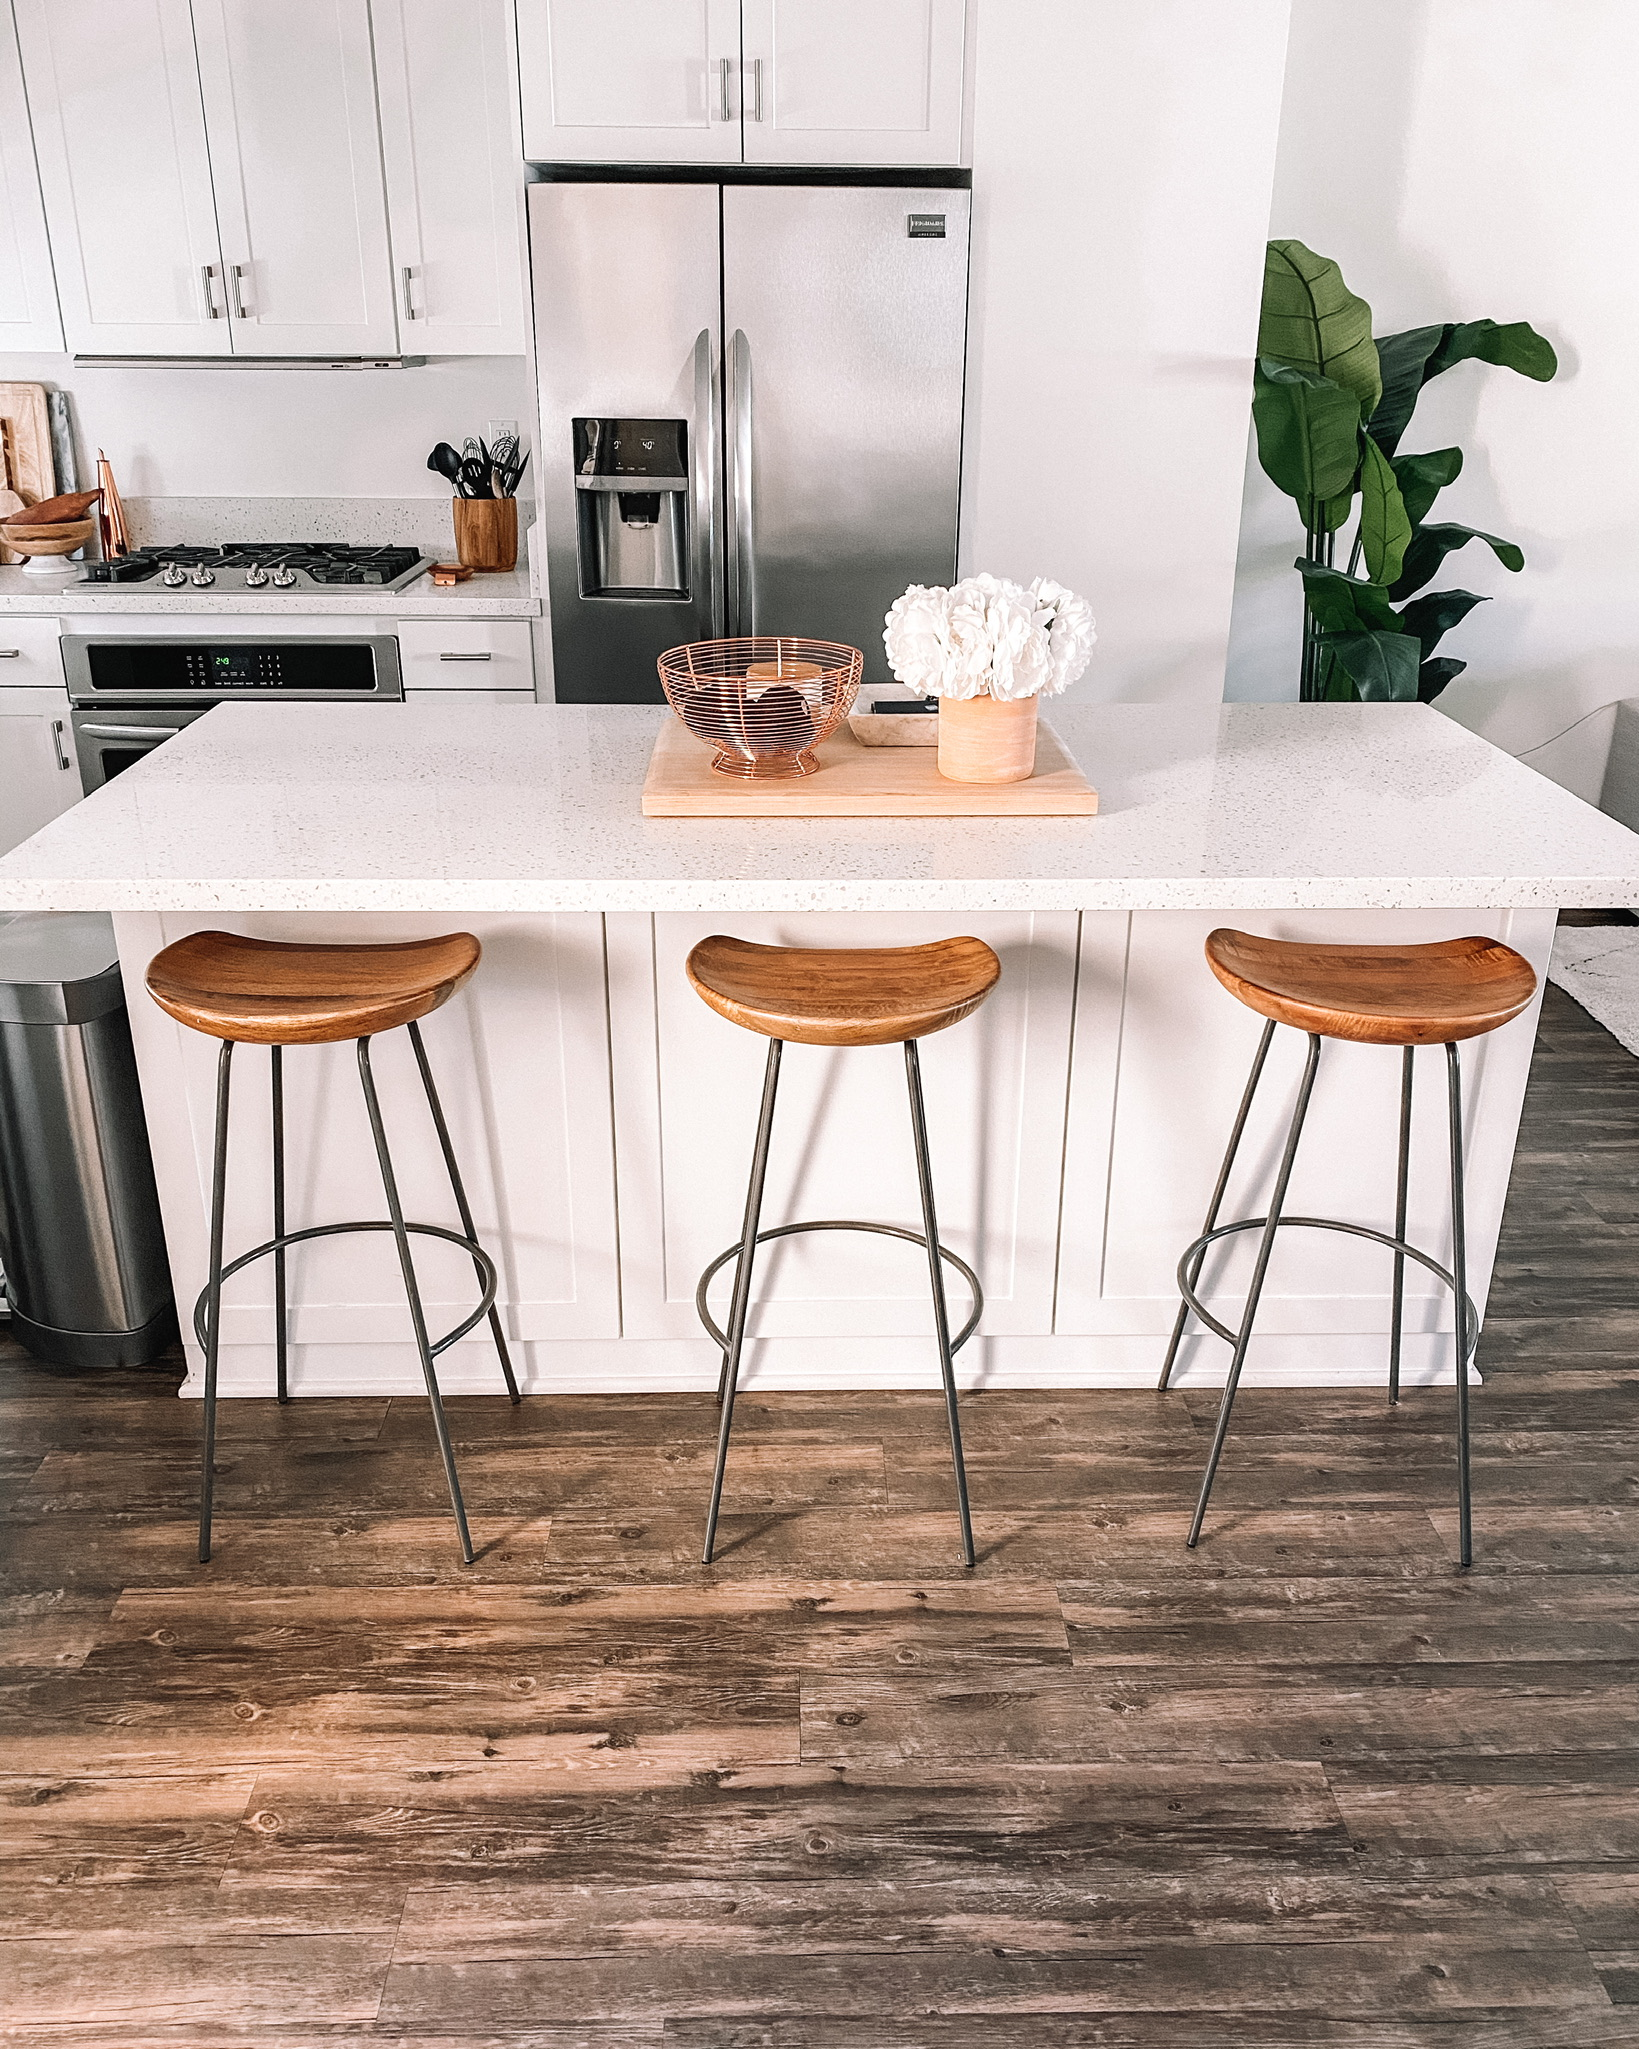 Fashion Jackson Home Decor Kitchen West Elm Alden Counter Stools